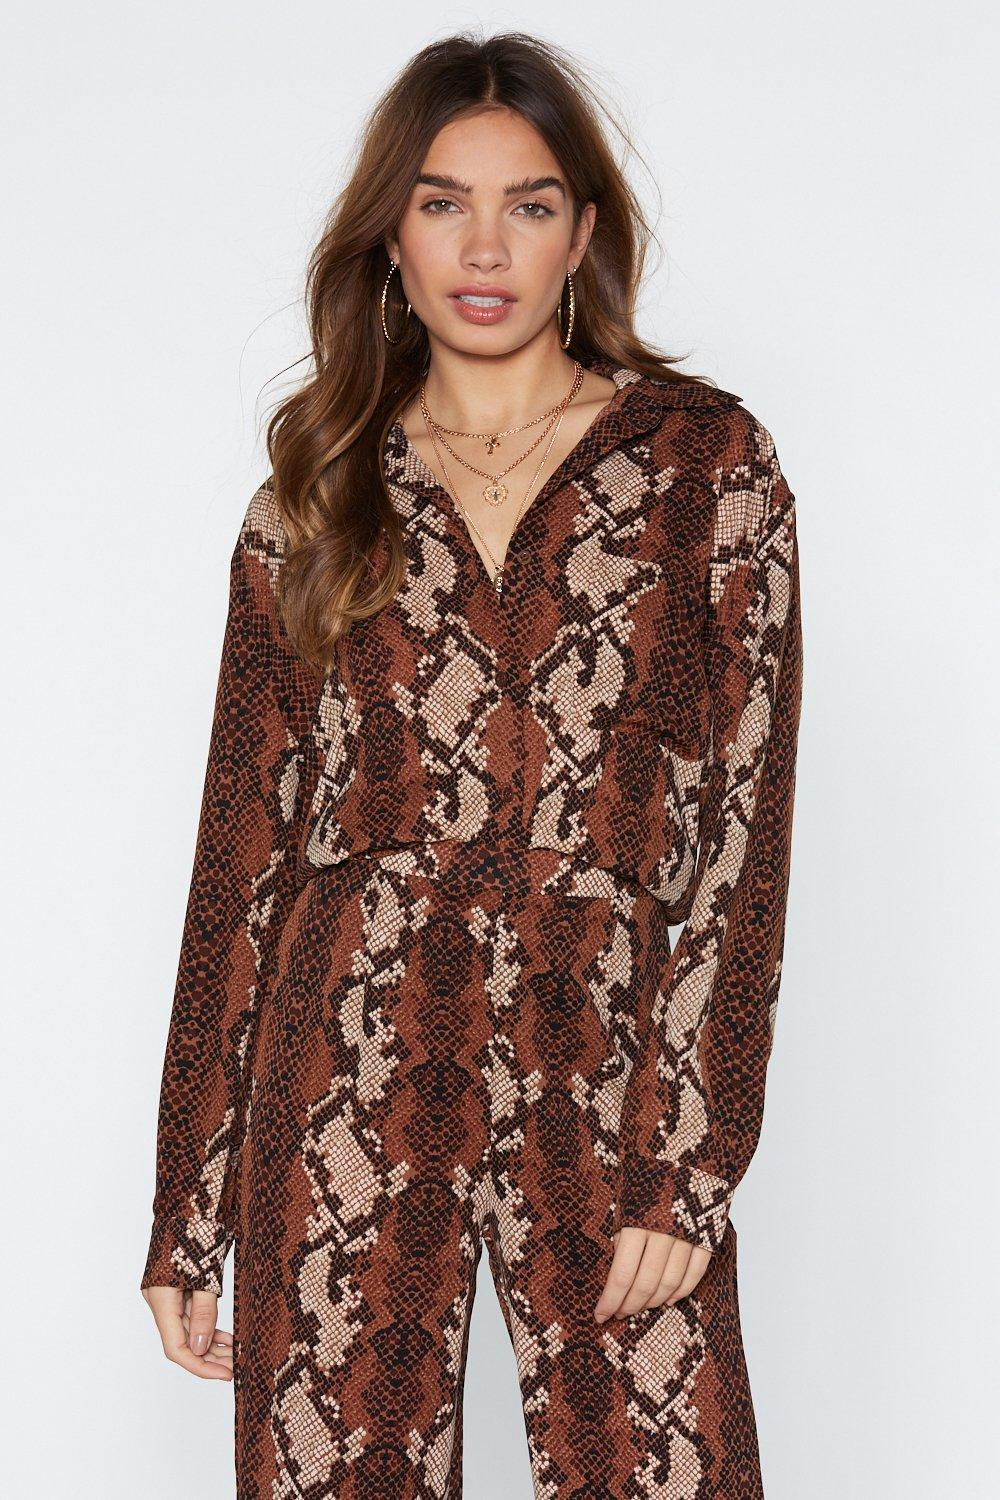 3eed29985 Snake Your Chances Relaxed Shirt   Shop Clothes at Nasty Gal!